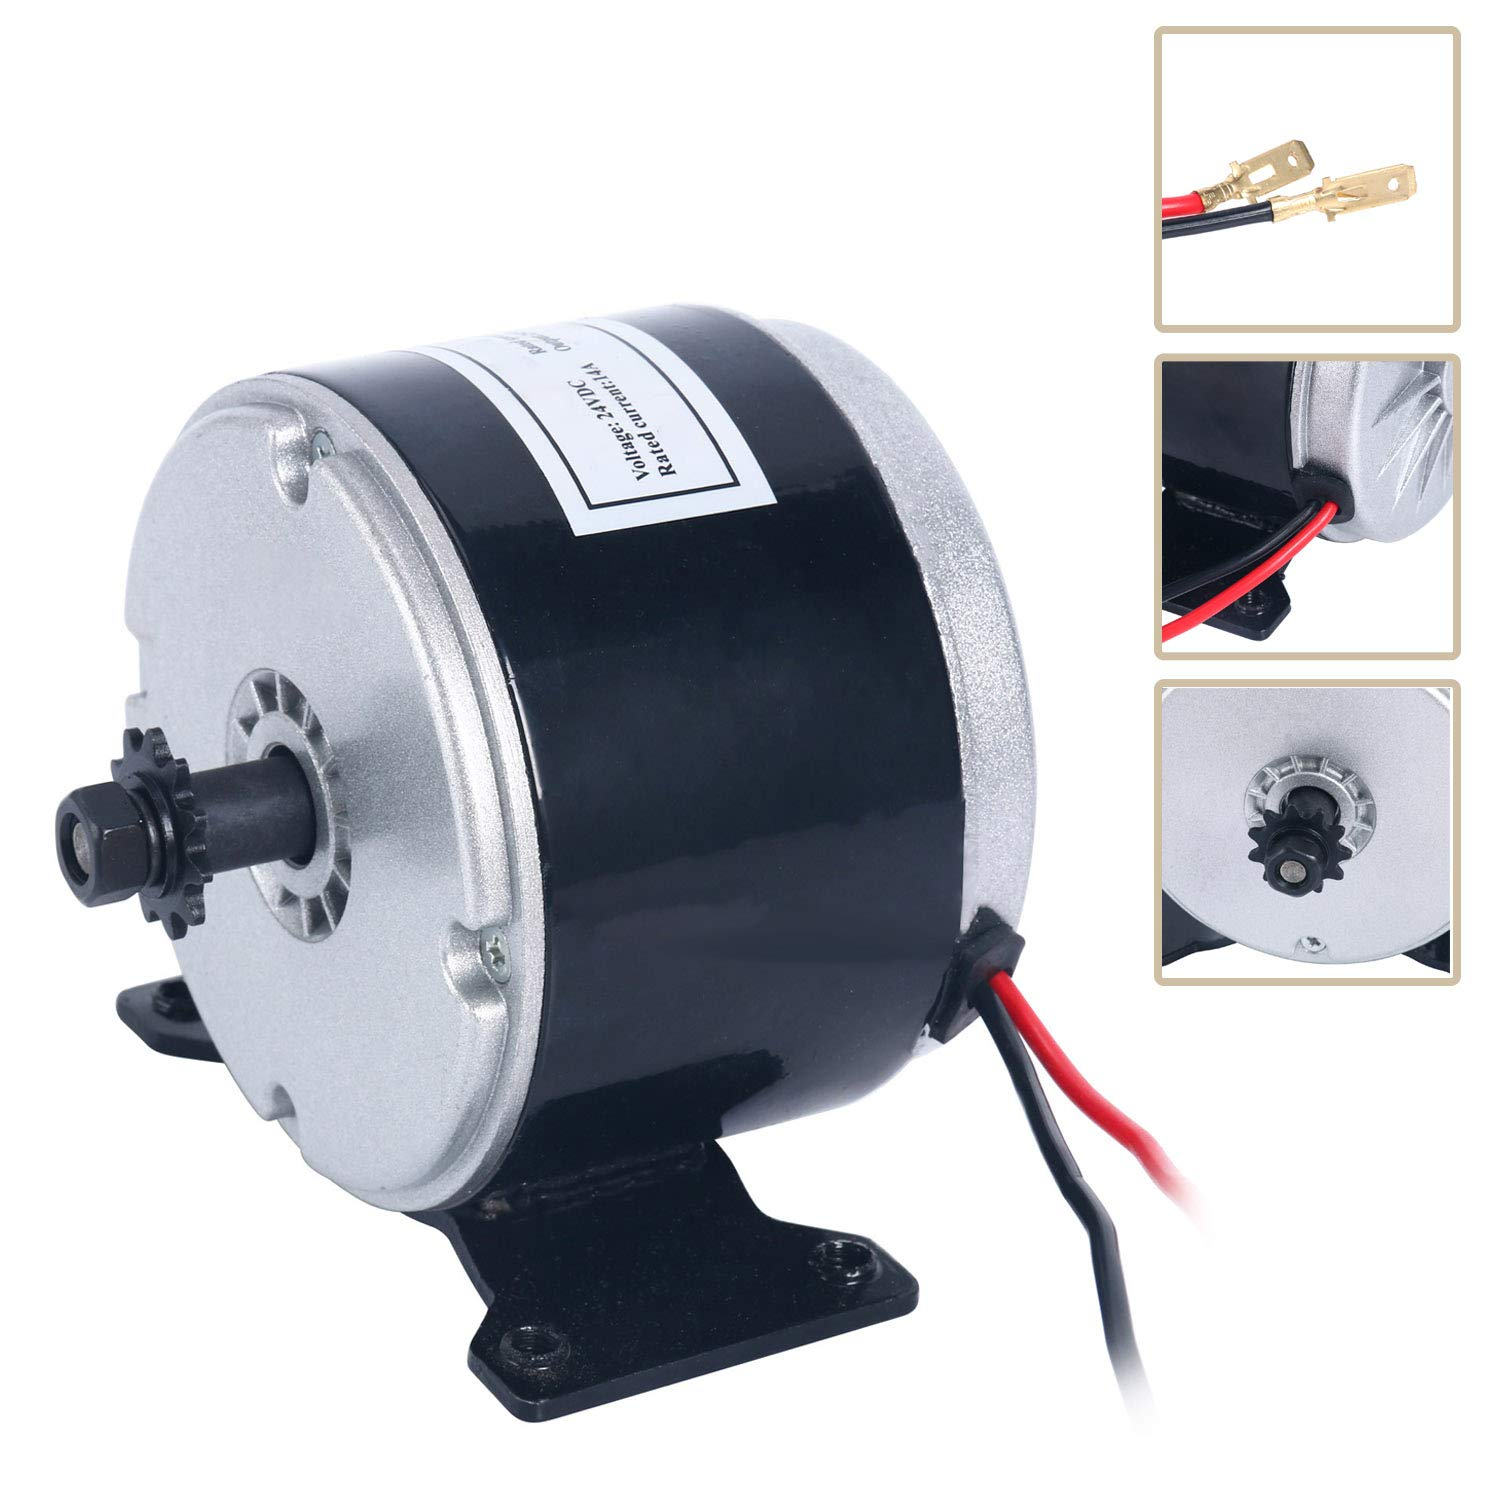 YaeTek 24V Electric Motor Brushed 250W 2650RPM Chain For E Scooter Drive Speed Control by YAETEK